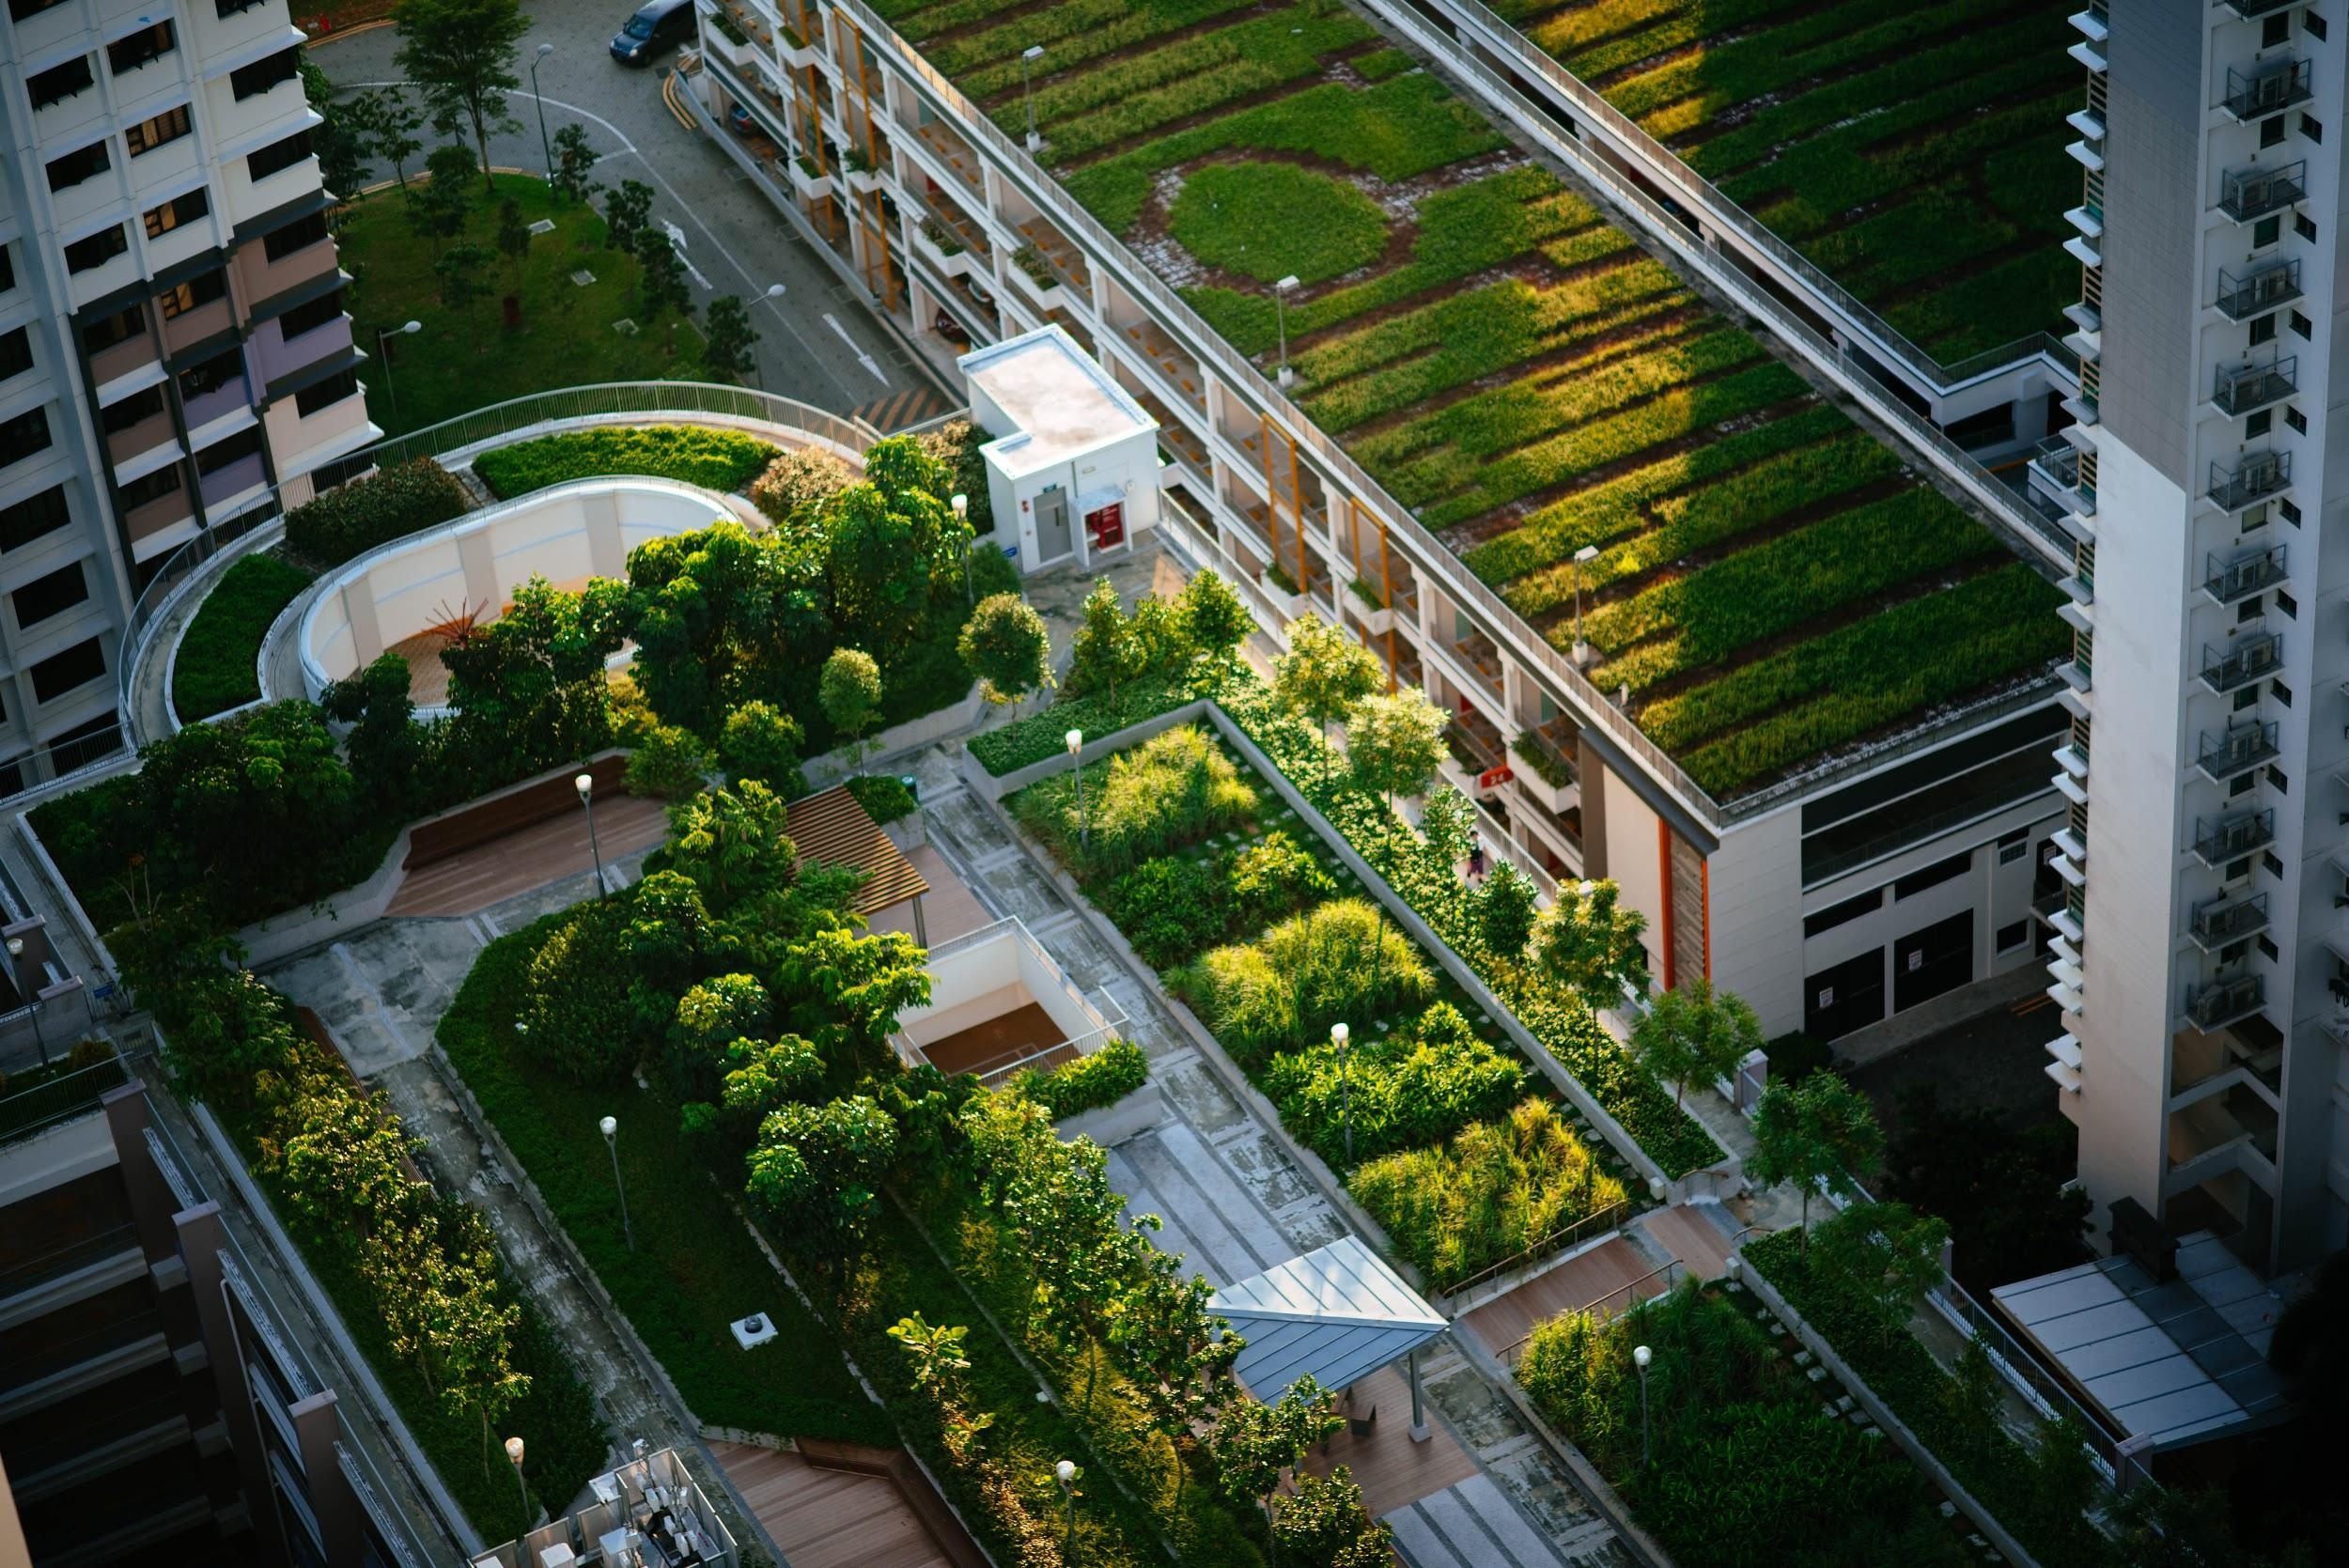 'Green roofs' such as these not only have environmental benefits, but a study shows they also strengthen your attention skills if you look at them during a micro-break.